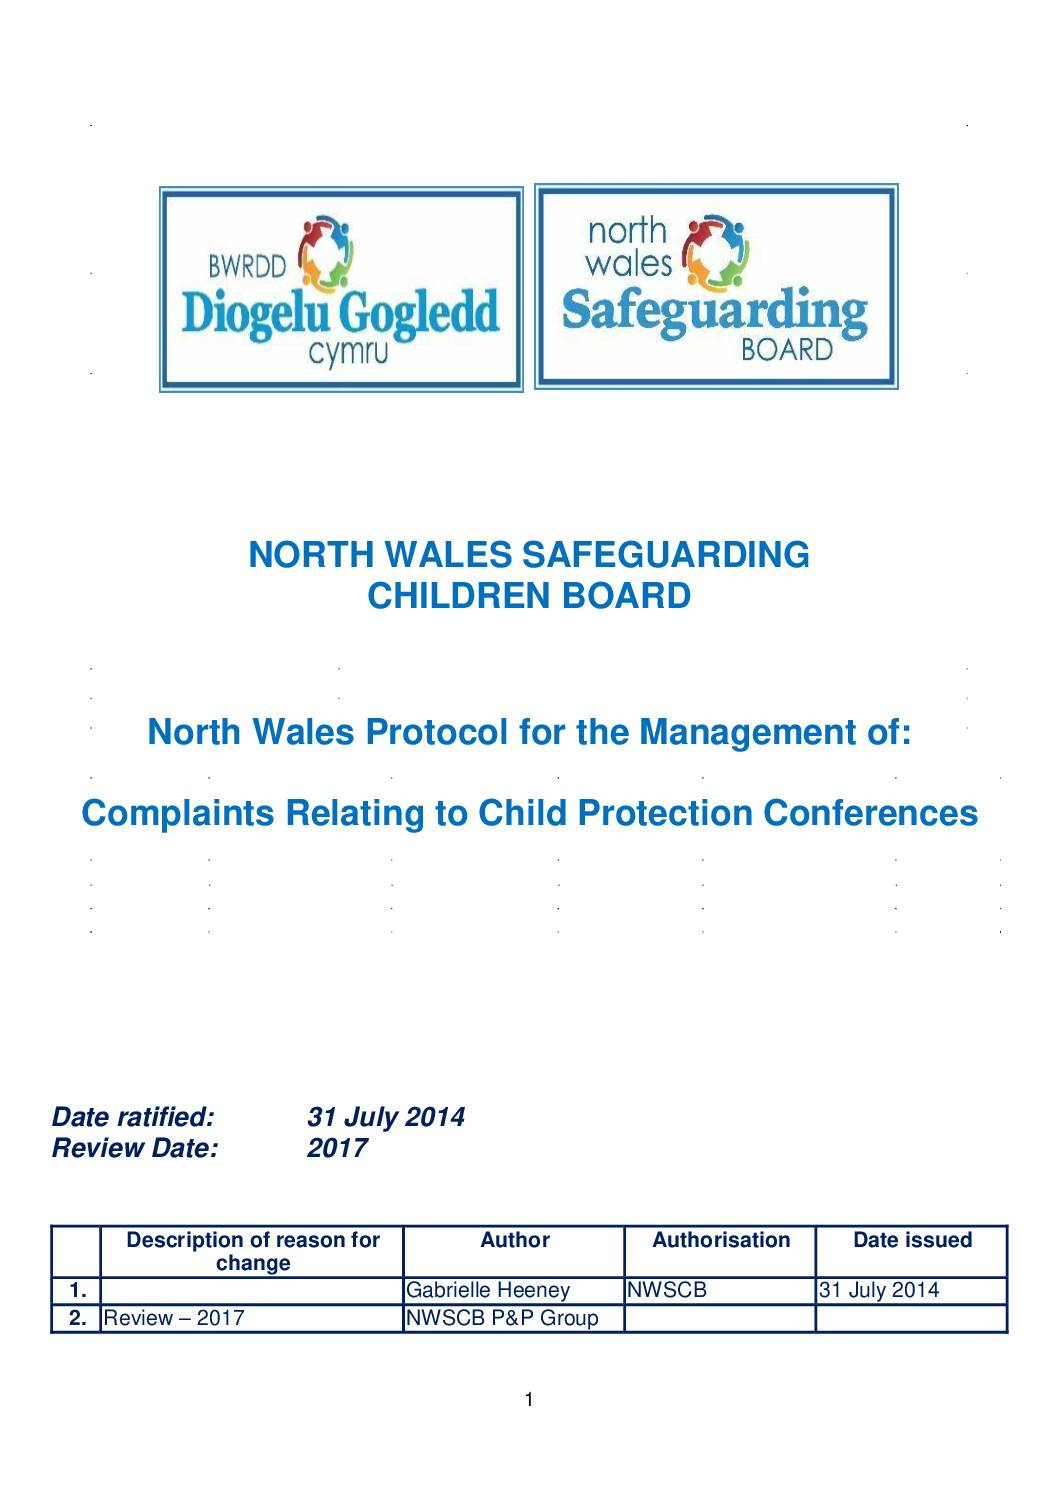 Protocol for the Management of Complaints Relating to Child Protection Conferences